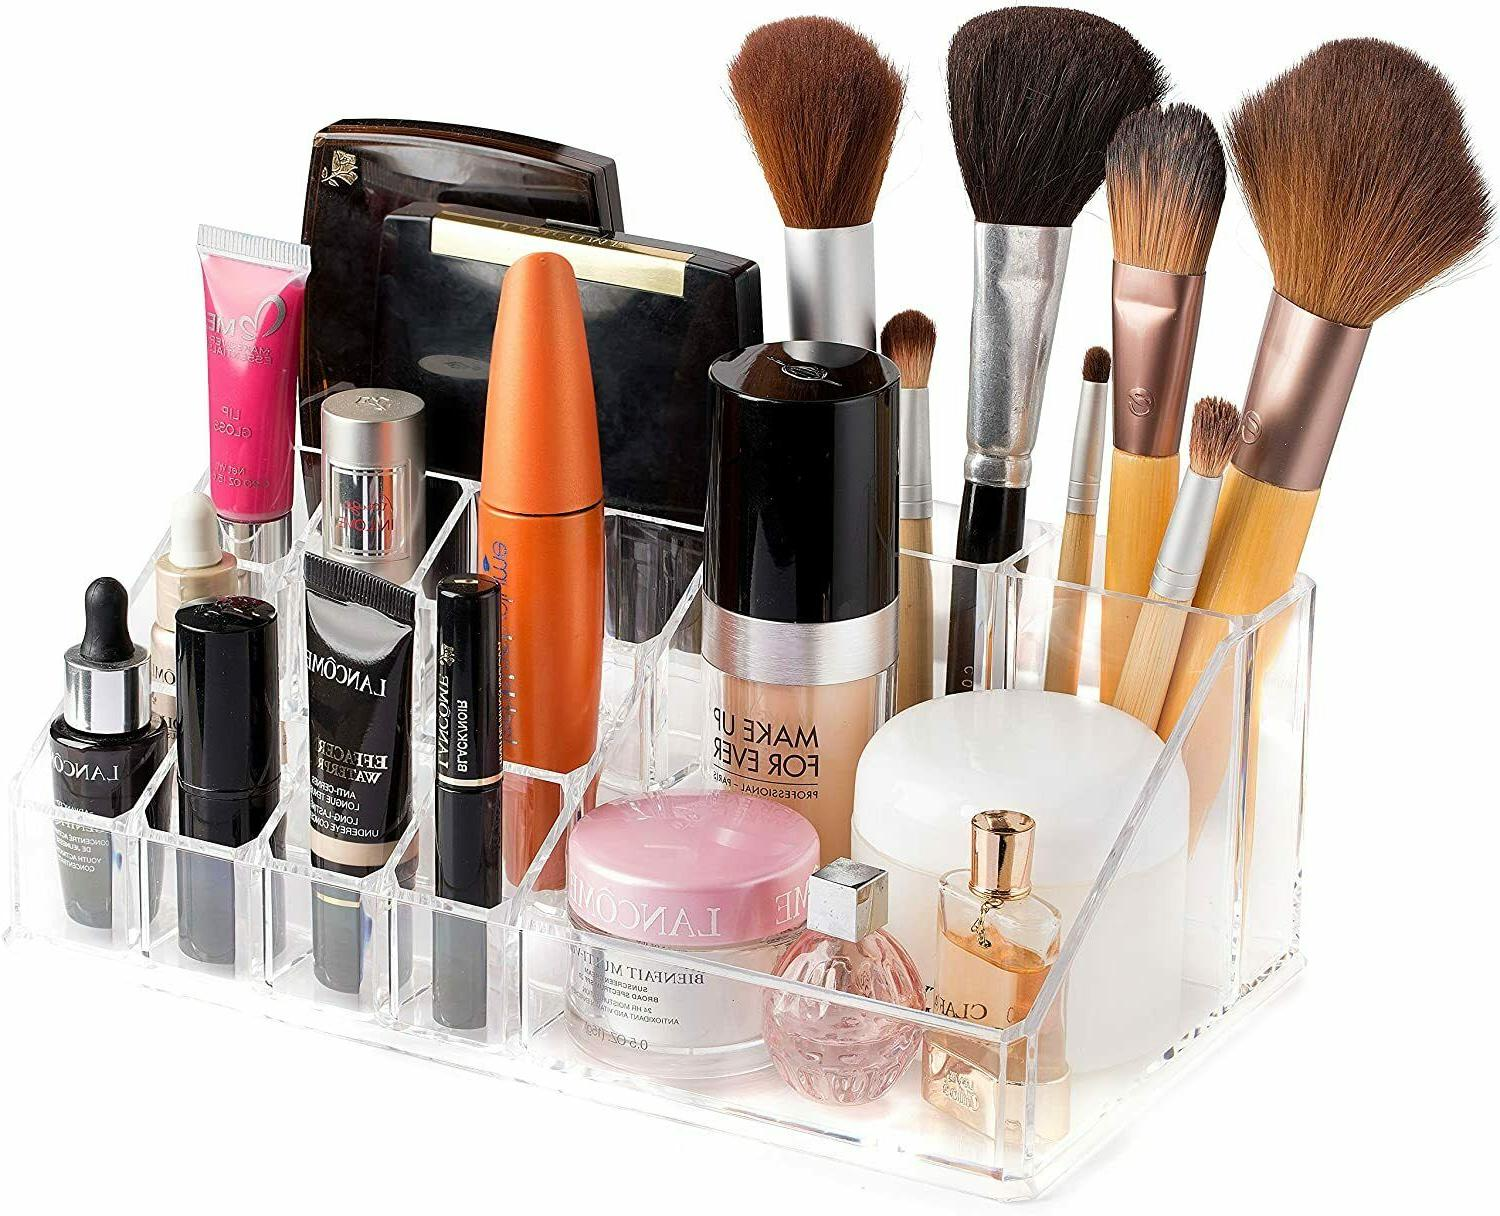 Acrylic Cosmetic Case Holder Storage Display